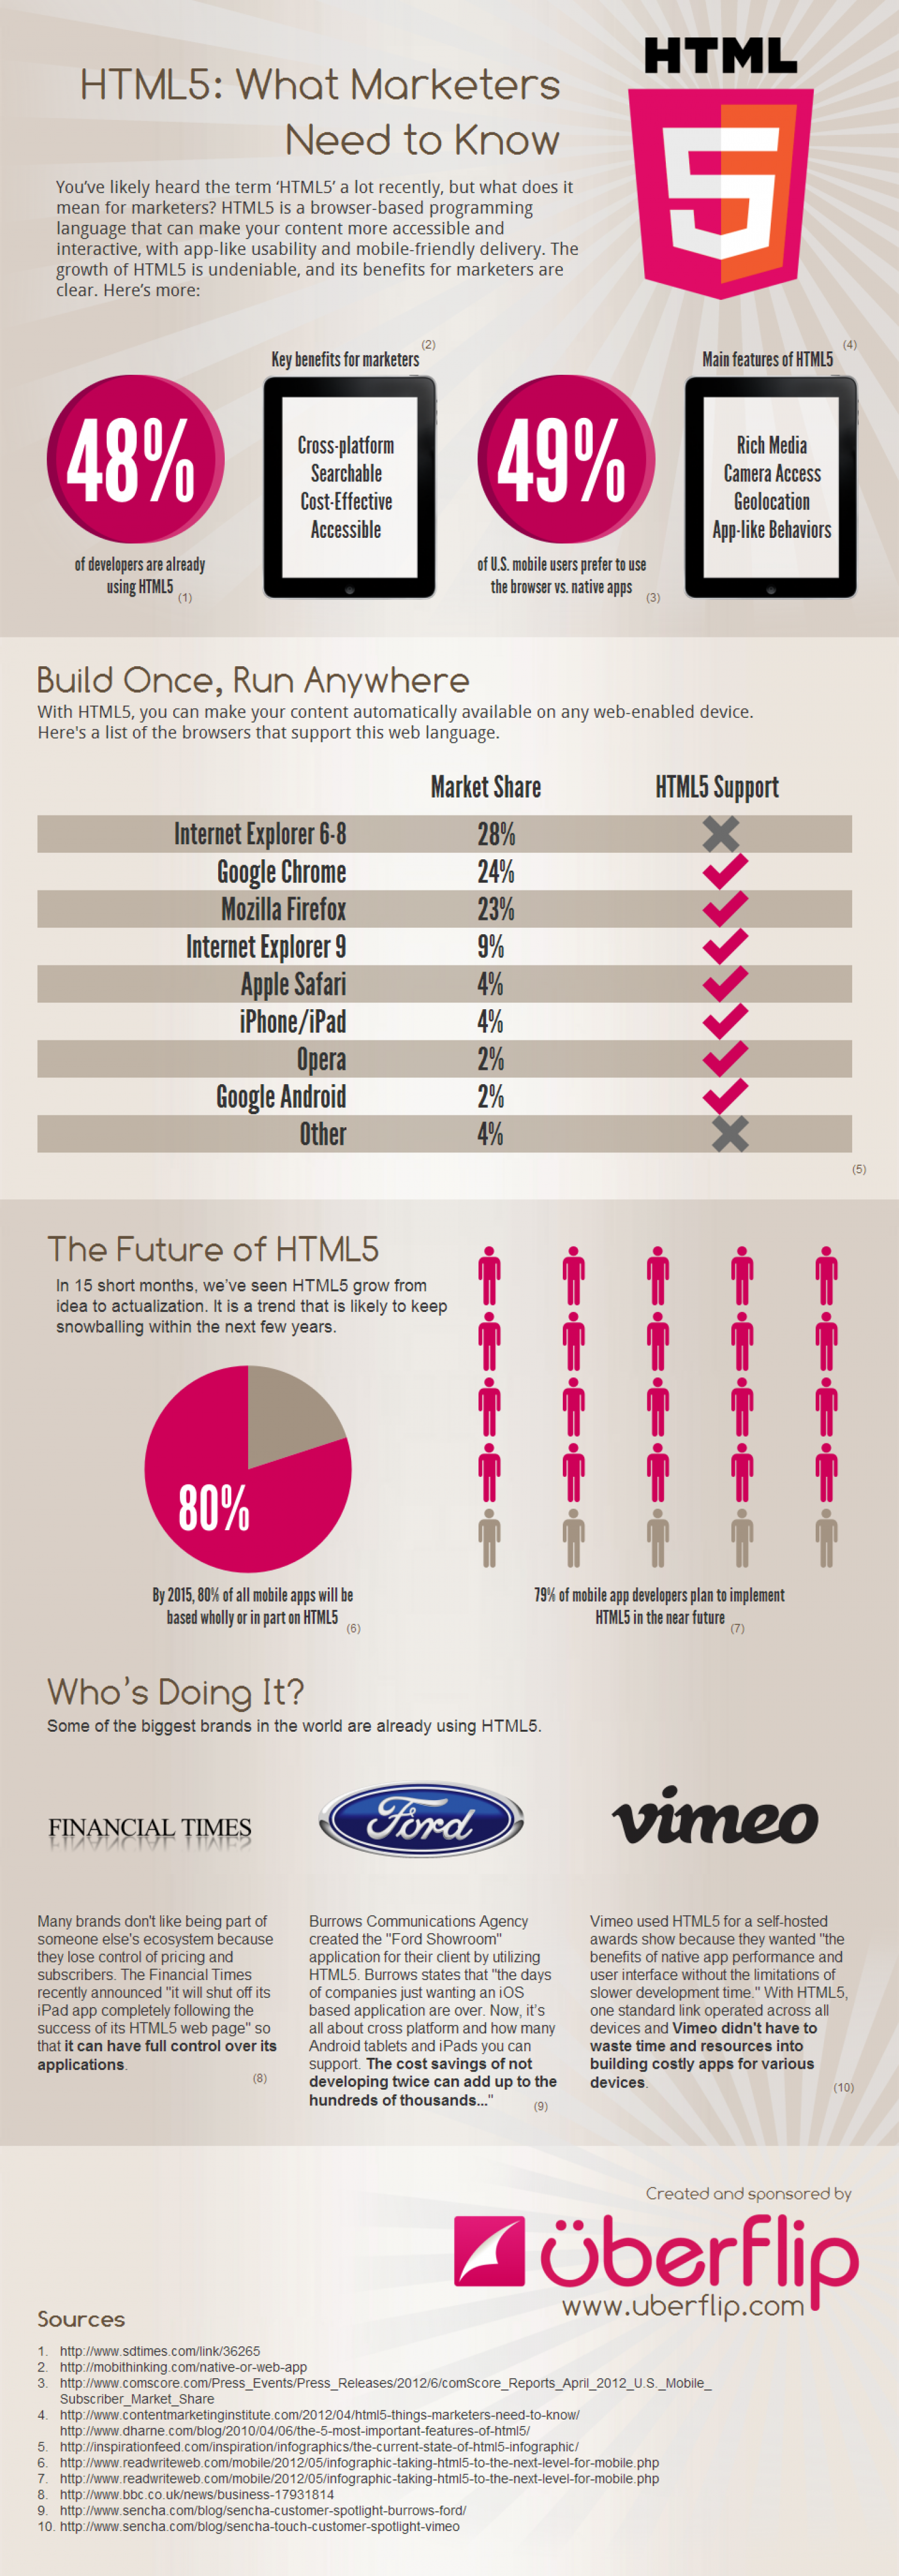 HTML5: What Marketers Need to Know Infographic